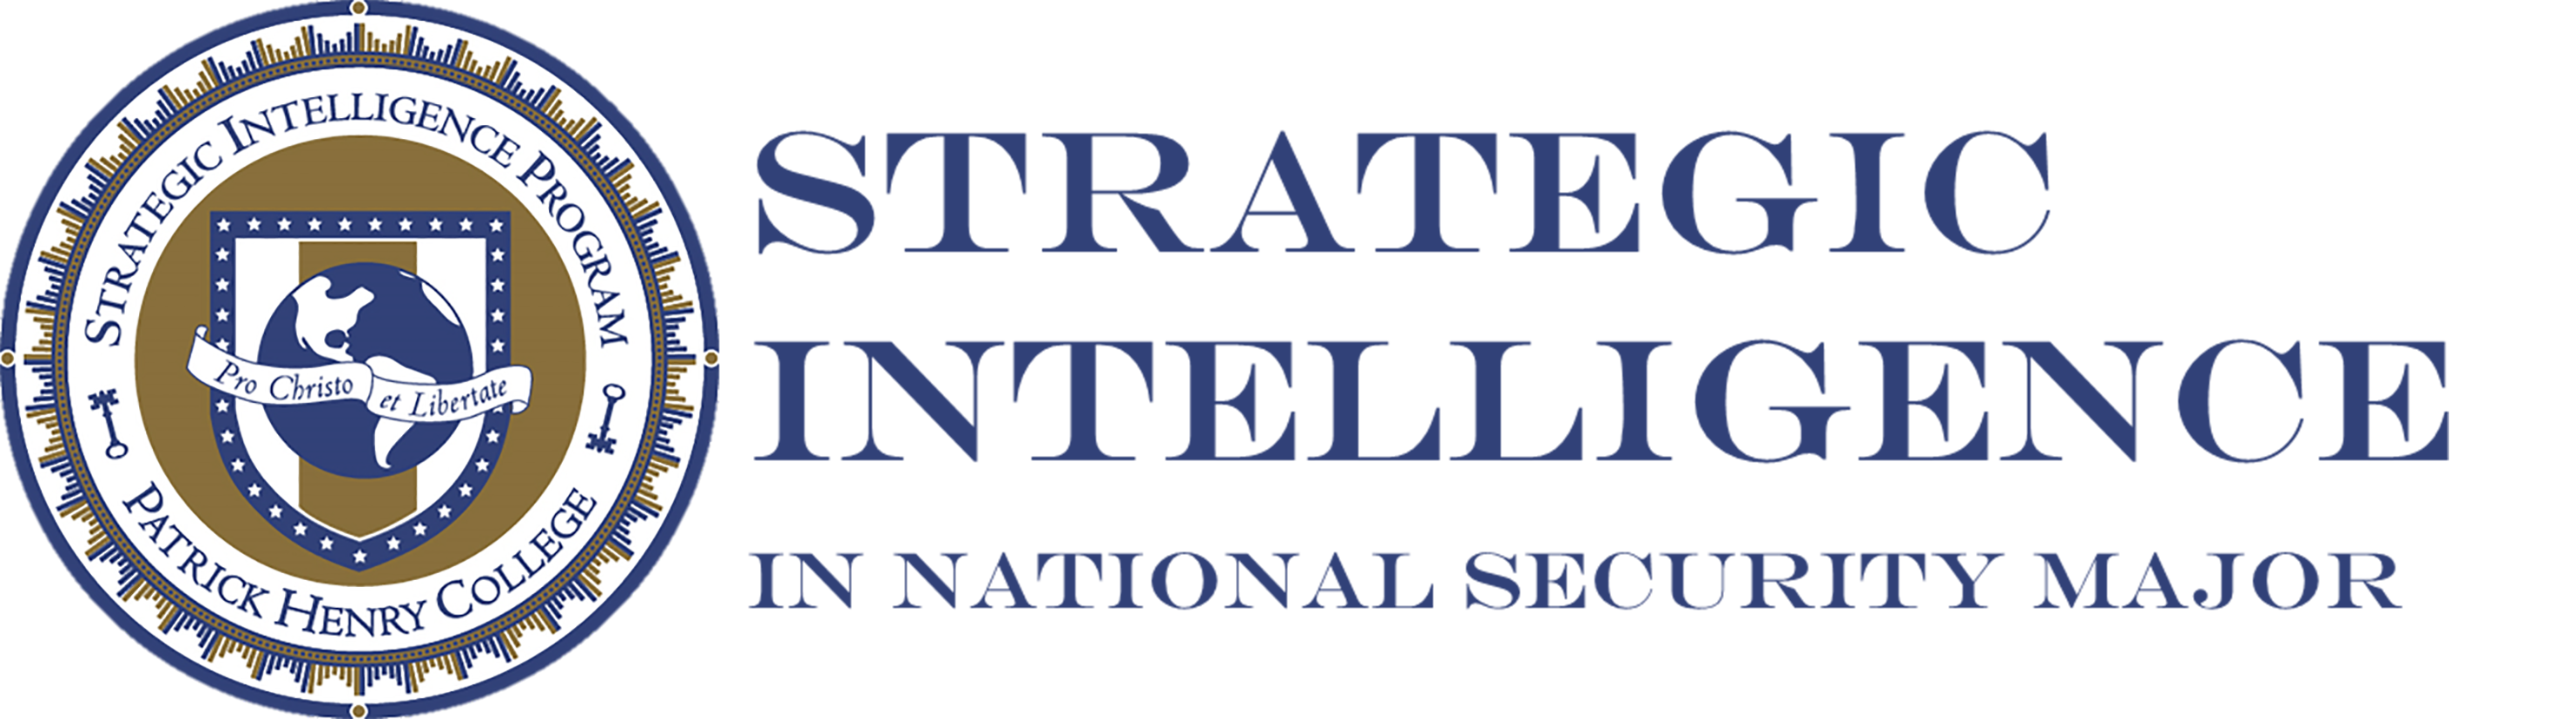 Strategic Intelligence Logo